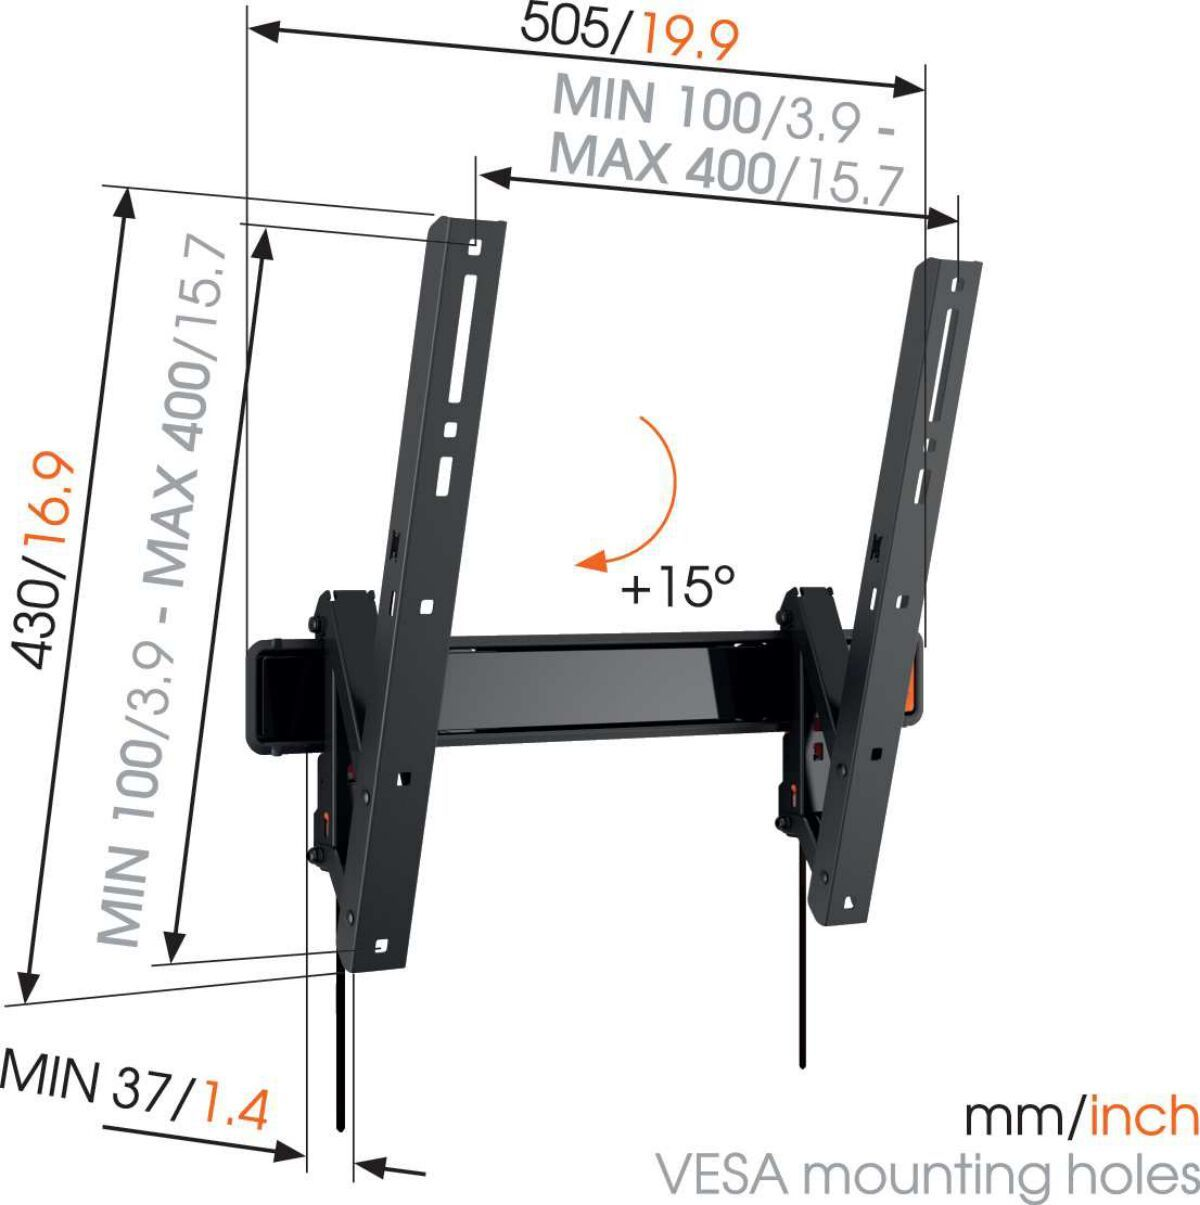 Vogel's W50710 Tilting TV Wall Mount - Suitable for 32 up to 55 inch TVs up to 30 kg - - Dimensions